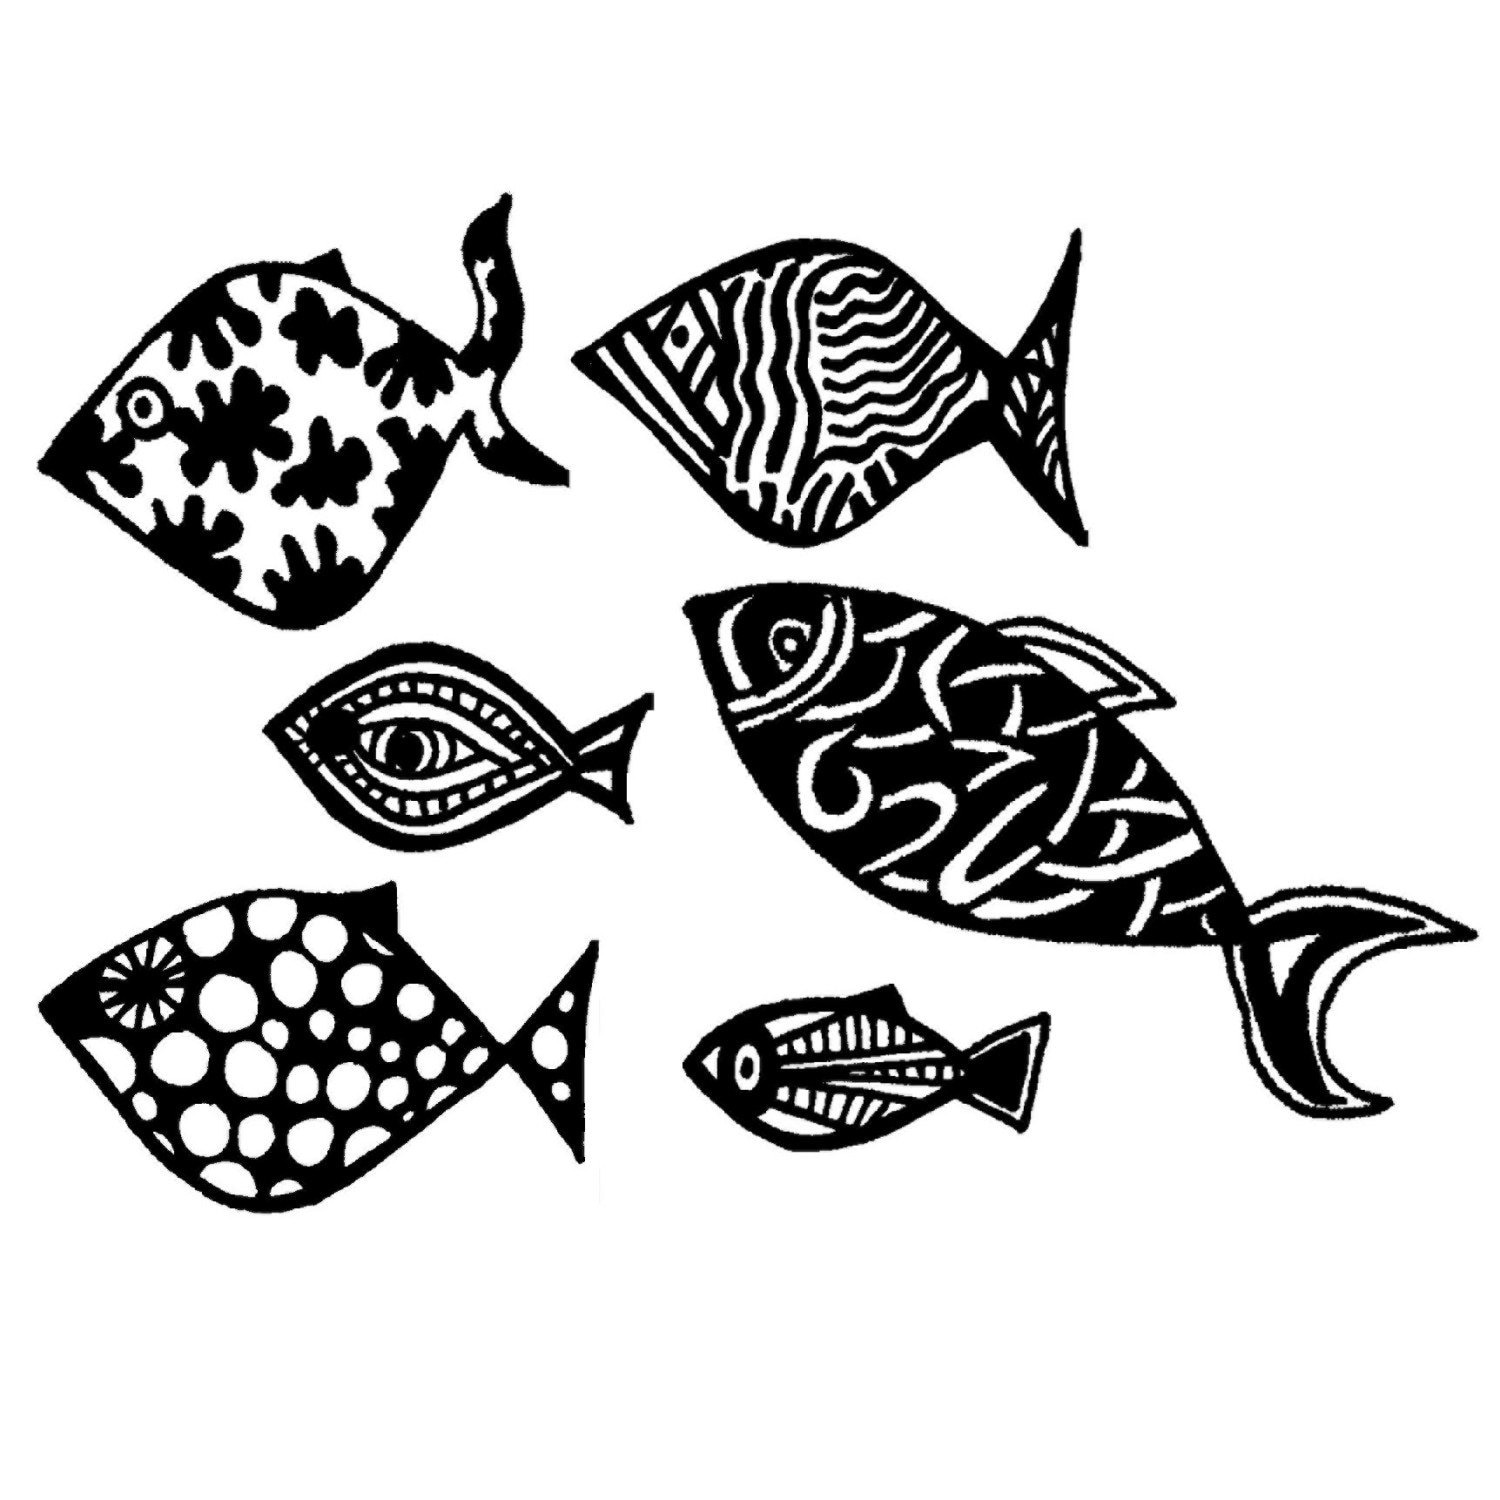 Fish notecards, set of 10 - karmabee